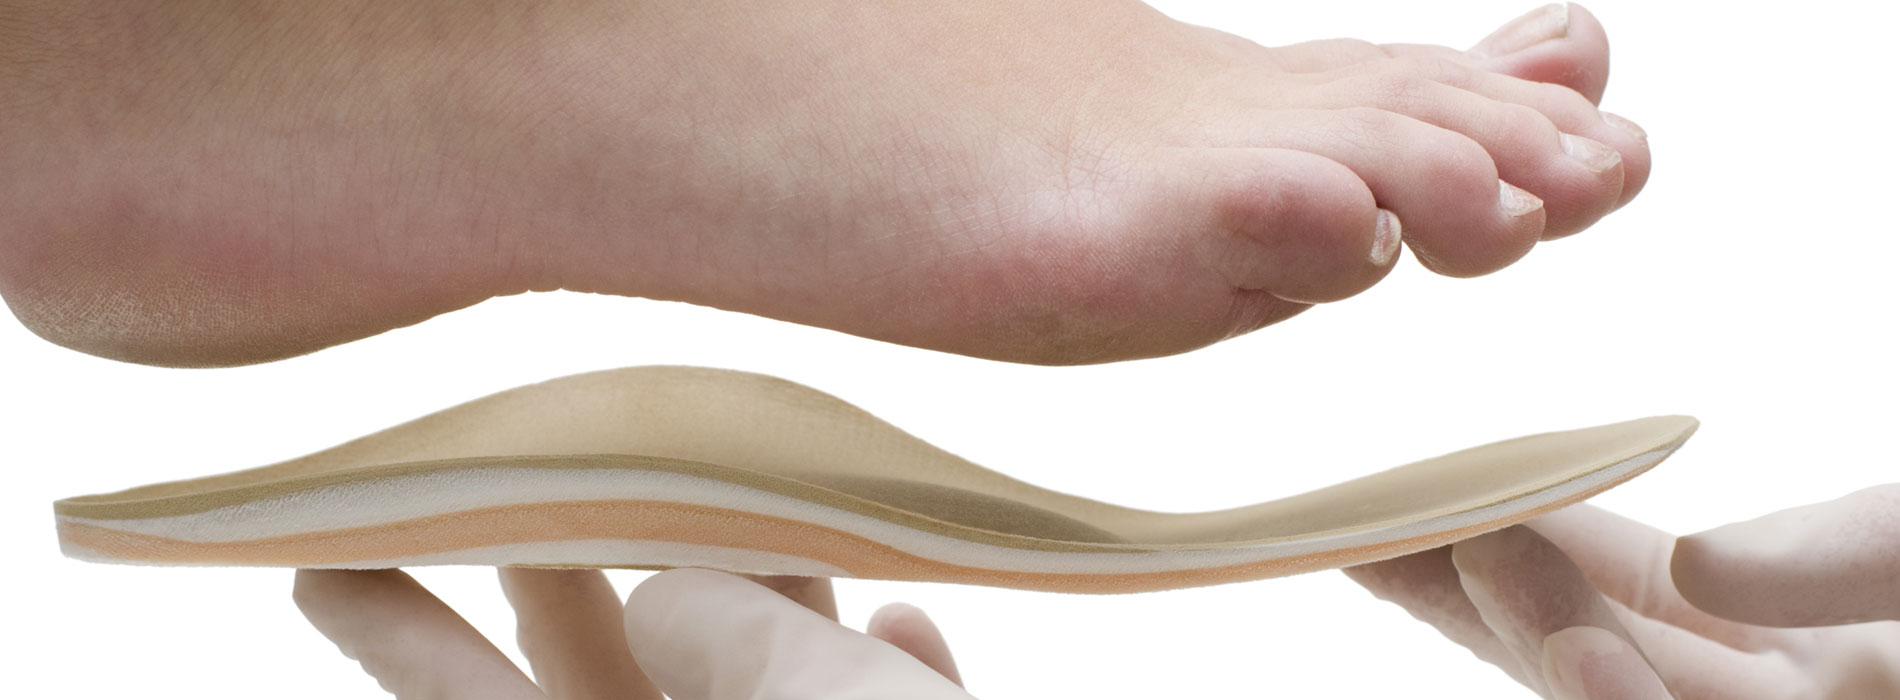 obrien-clinic-orthotics